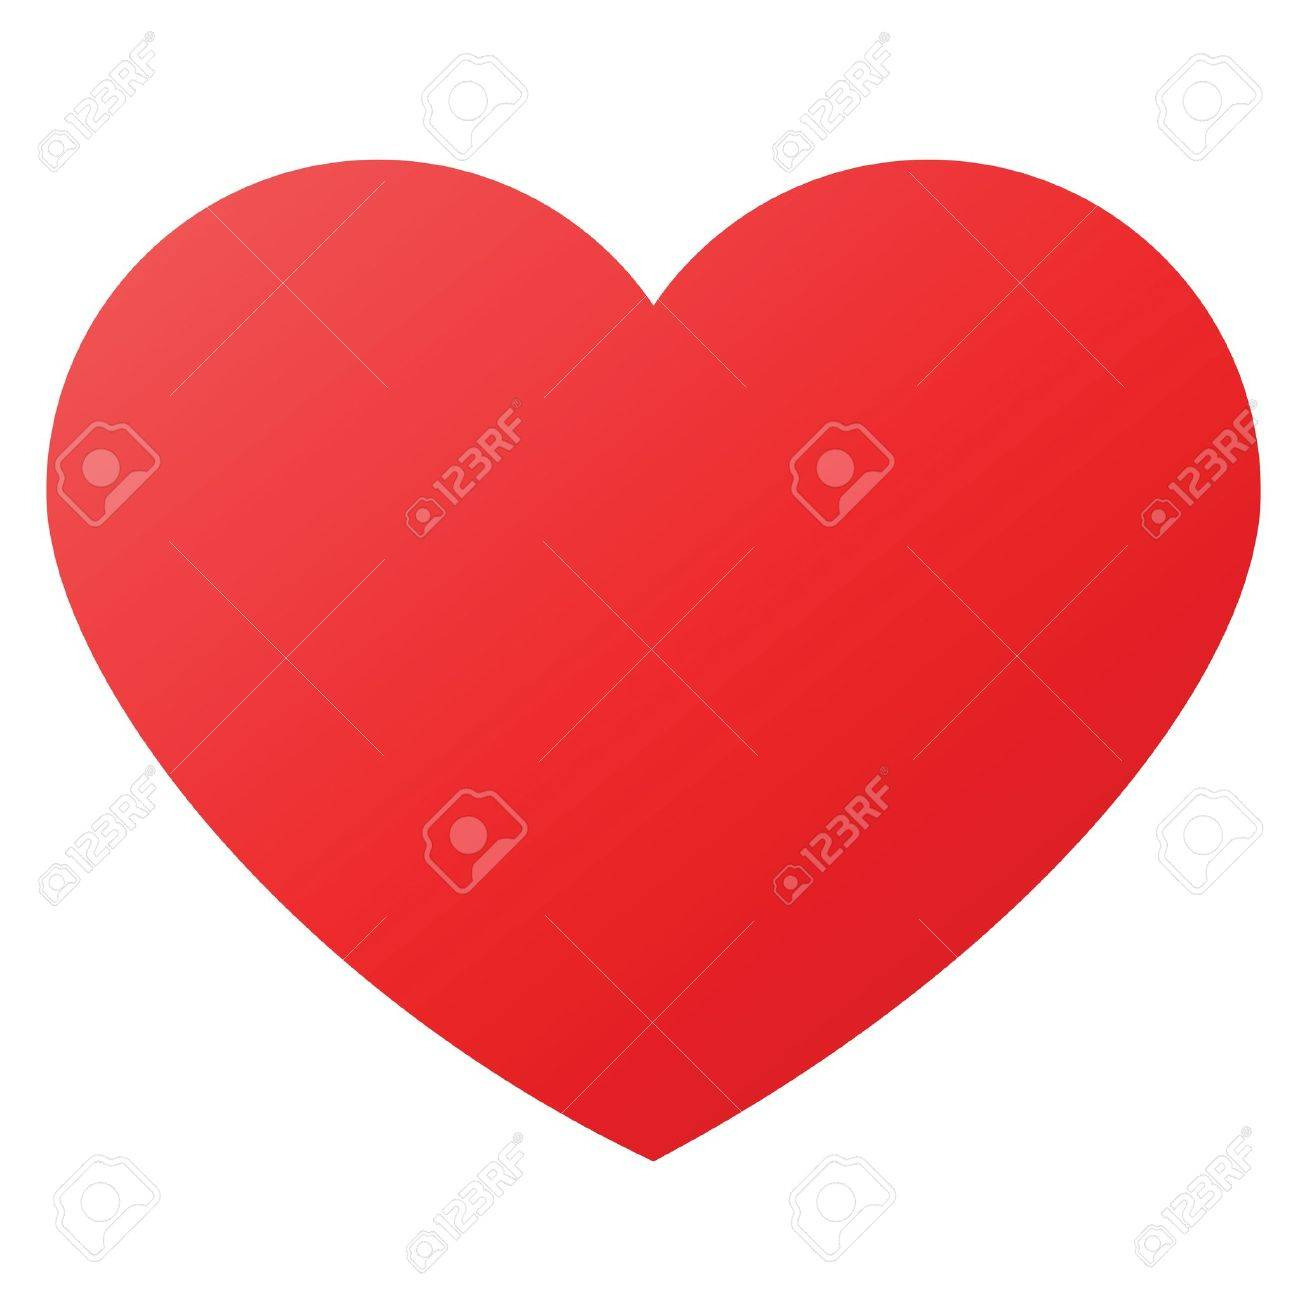 Heart shape design for love symbols royalty free cliparts heart shape design for love symbols stock vector 11823444 buycottarizona Image collections